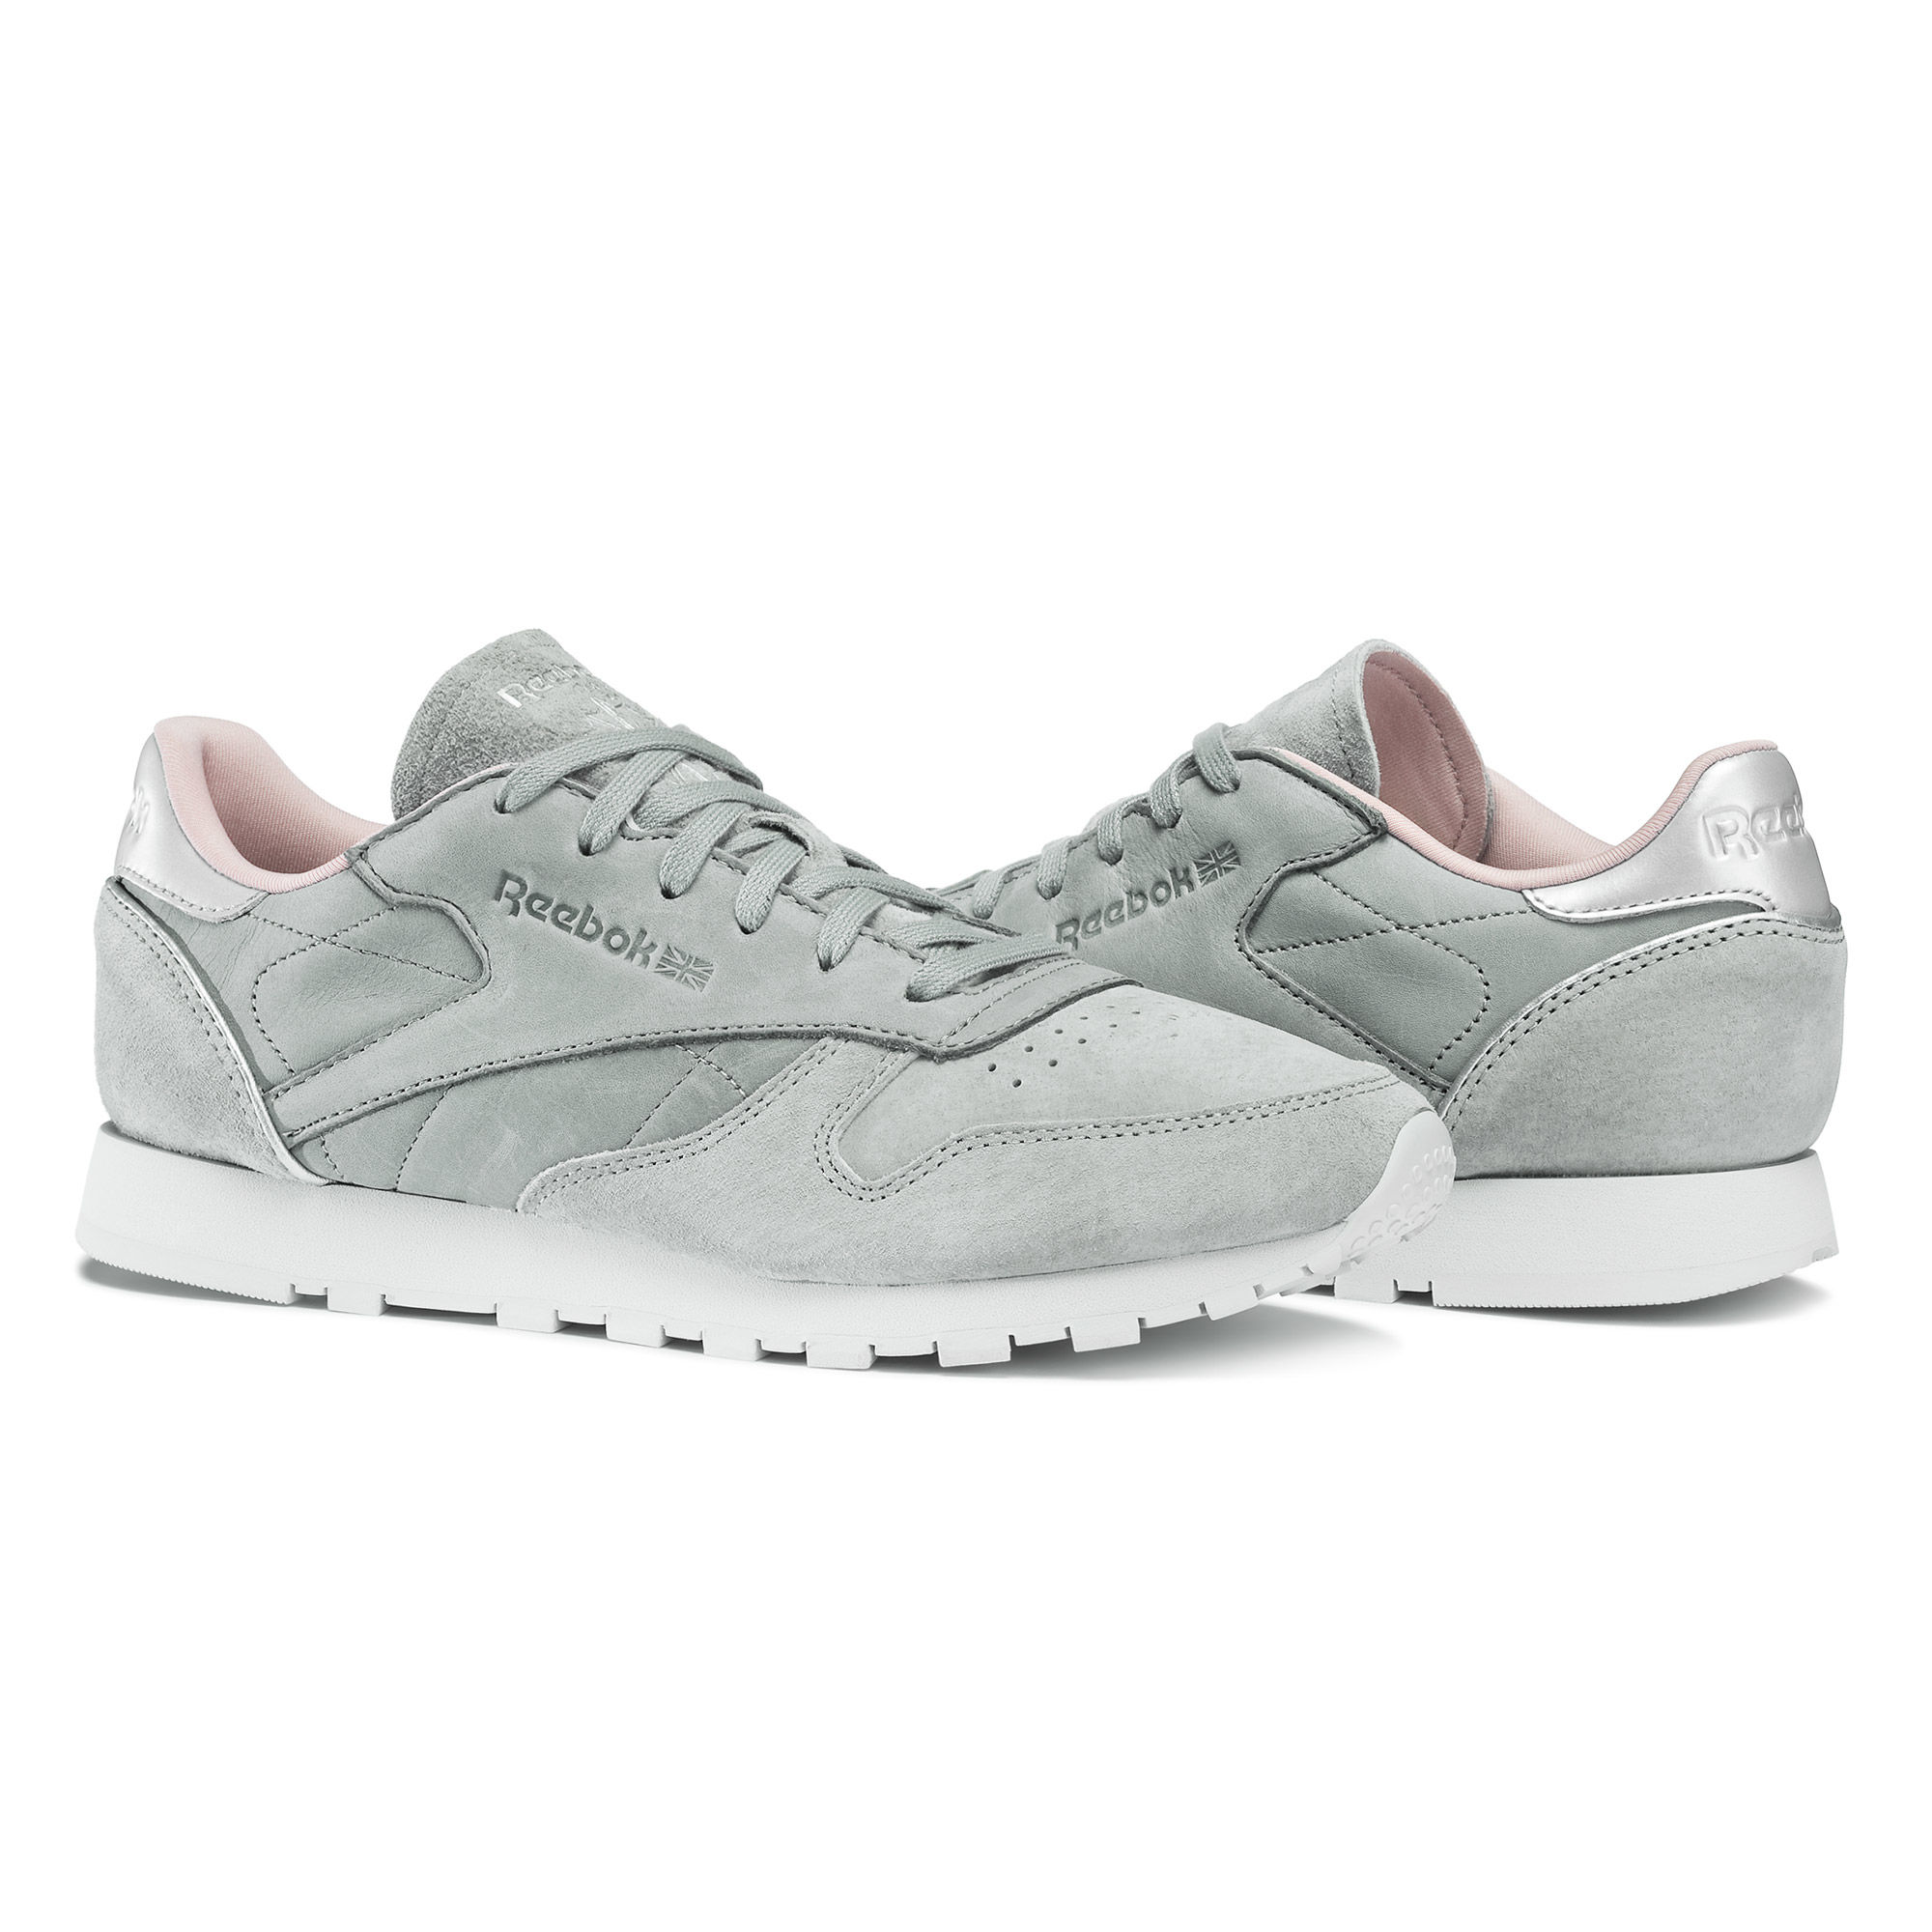 57b34fc38e Scarpe Outlet - Reebok Classic Leather Golden Neutrals Scontate ...